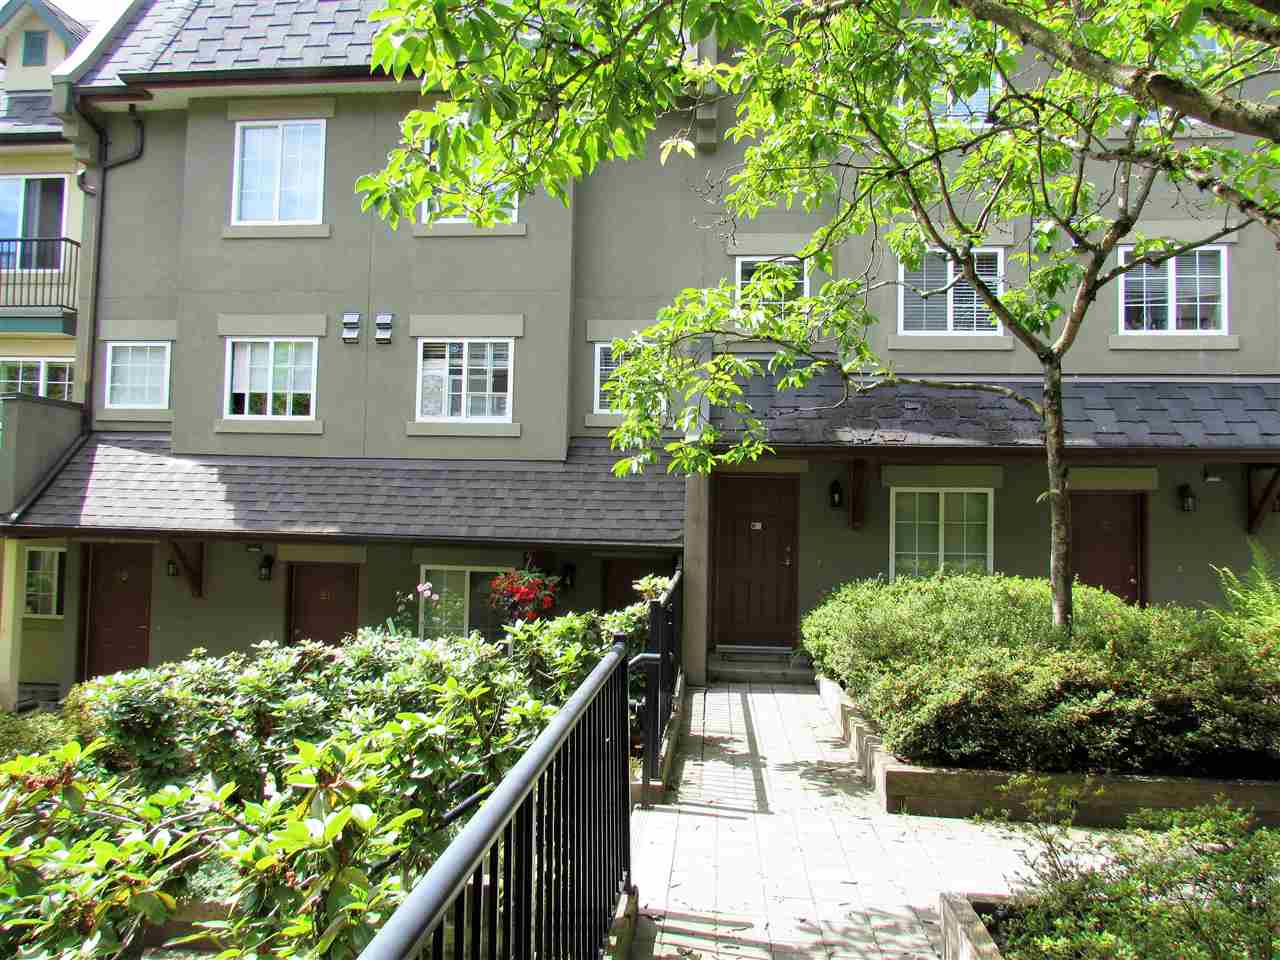 Main Photo: 25 1561 BOOTH Avenue in Coquitlam: Maillardville Townhouse for sale : MLS® # R2188356